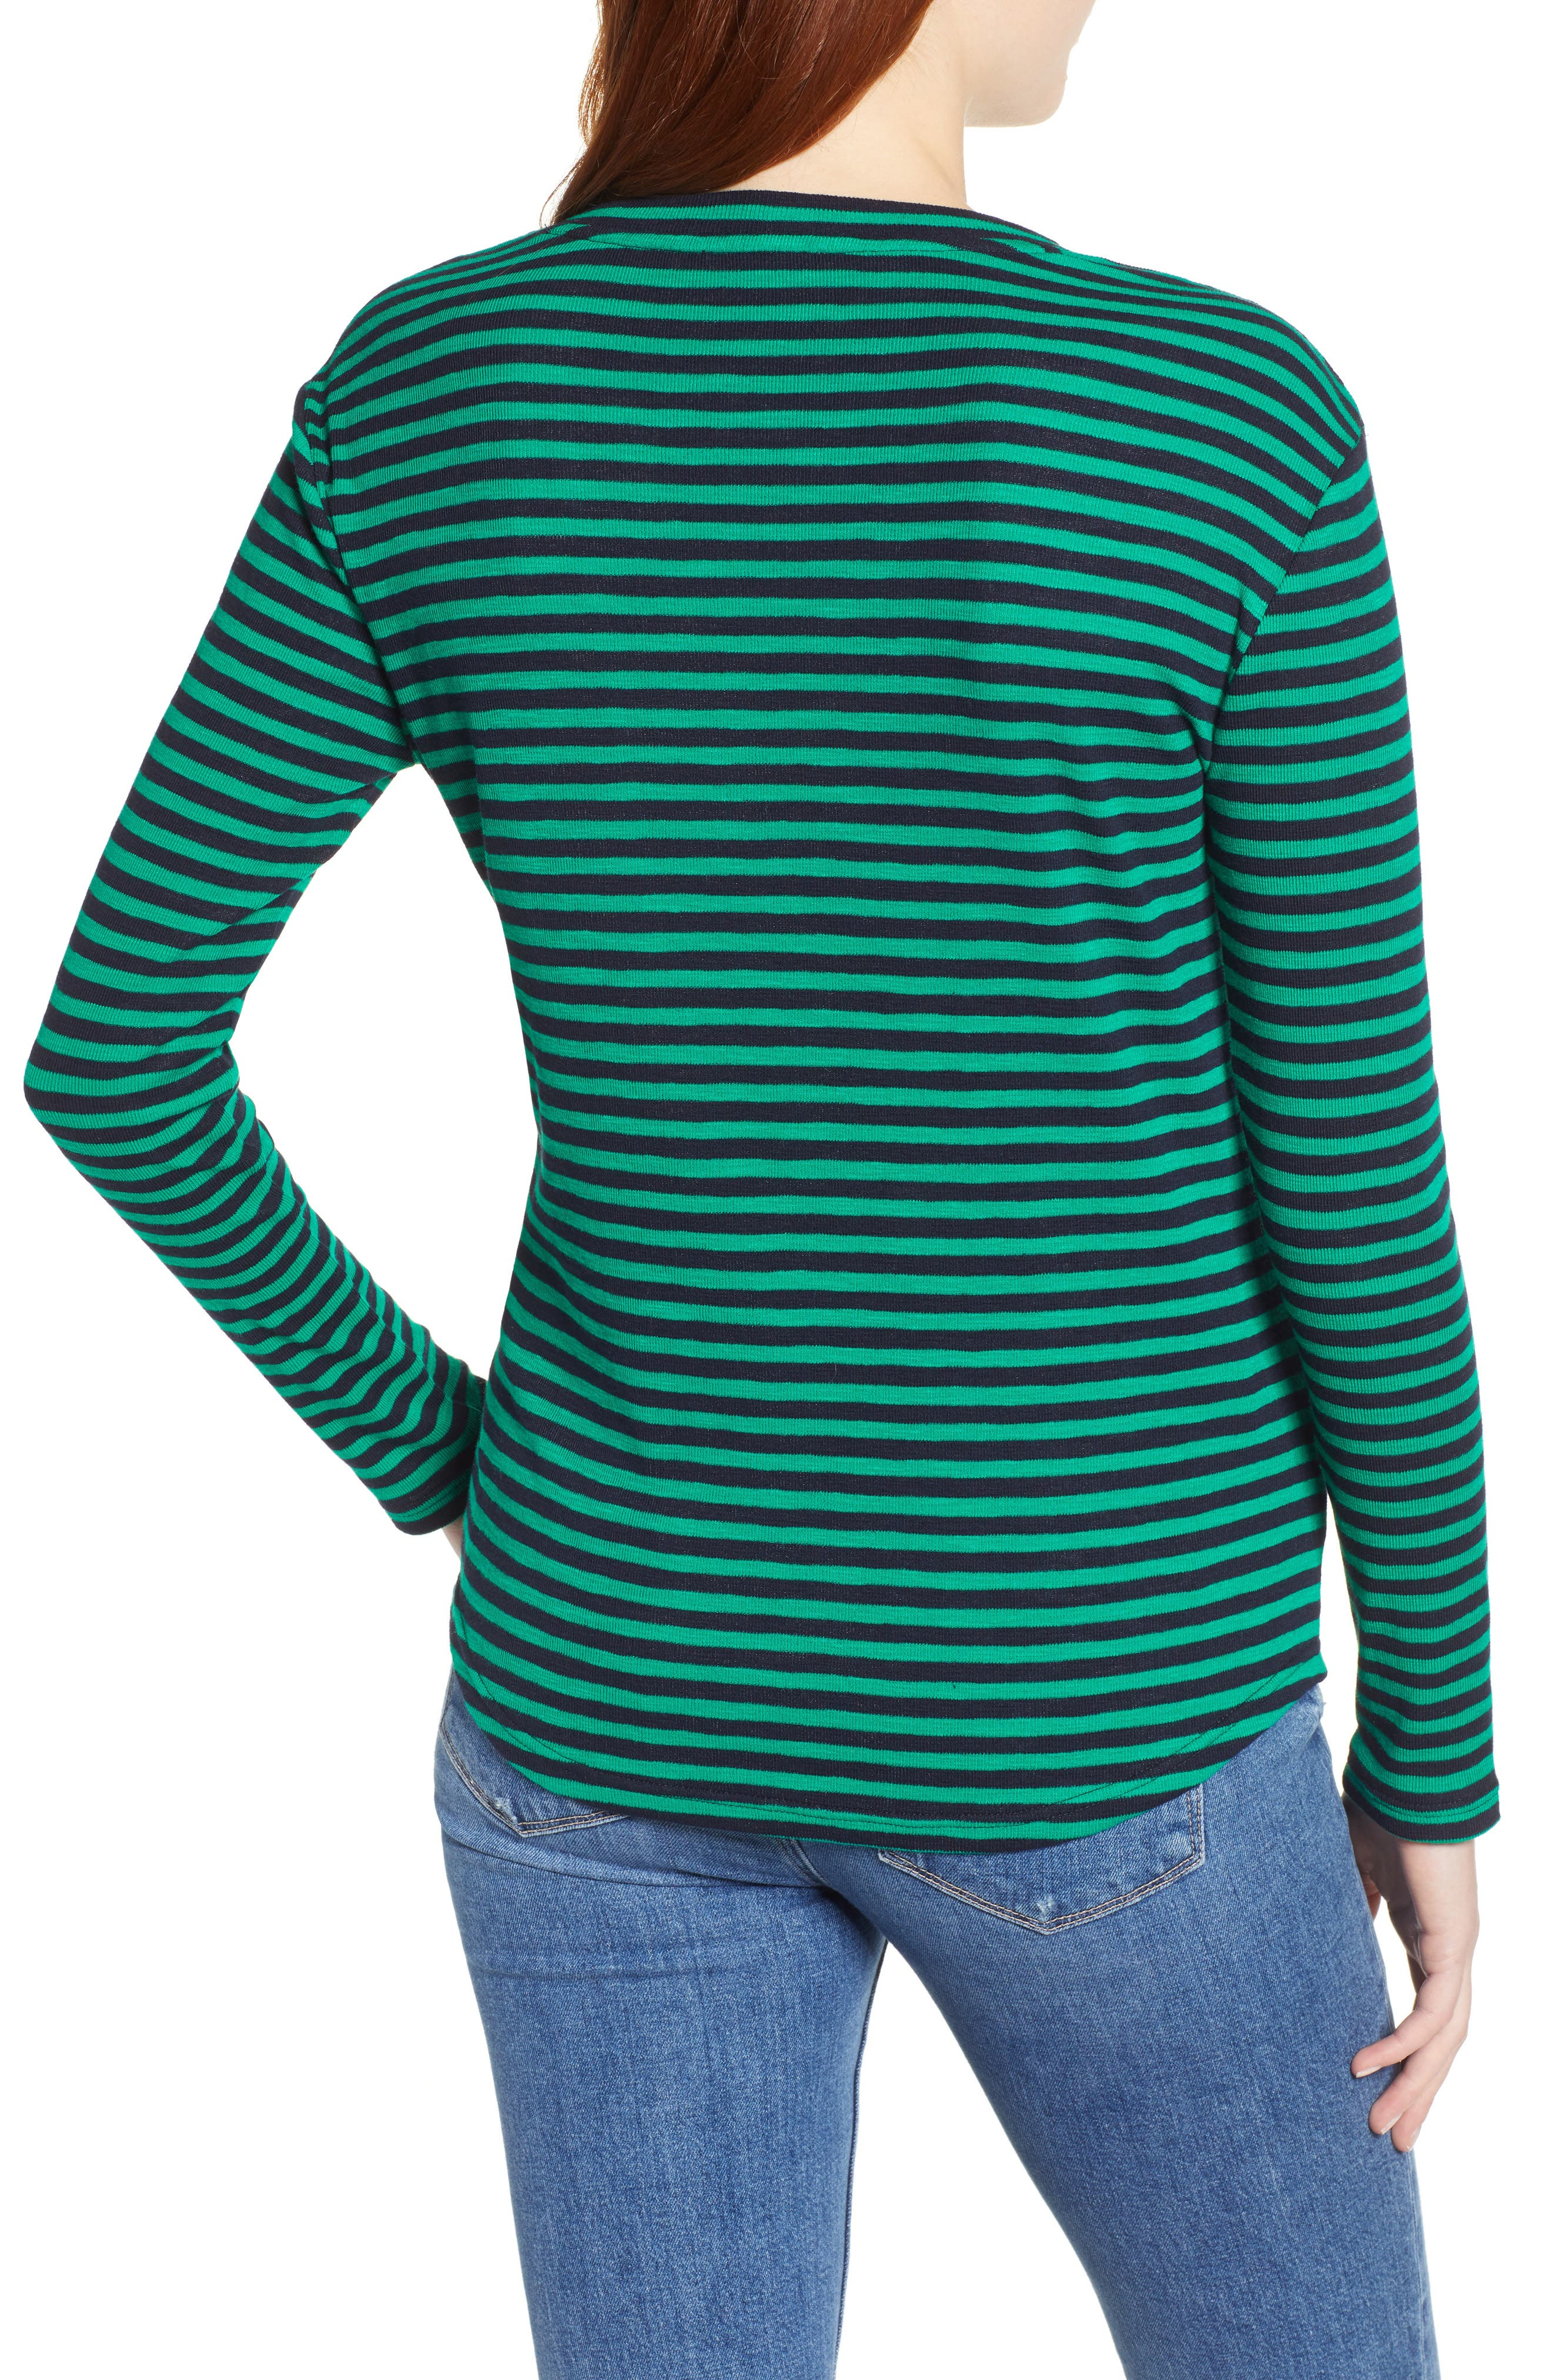 &.LAYERED, Twist Front Stripe Stretch Cotton Tee, Alternate thumbnail 2, color, NAVY/ GREEN